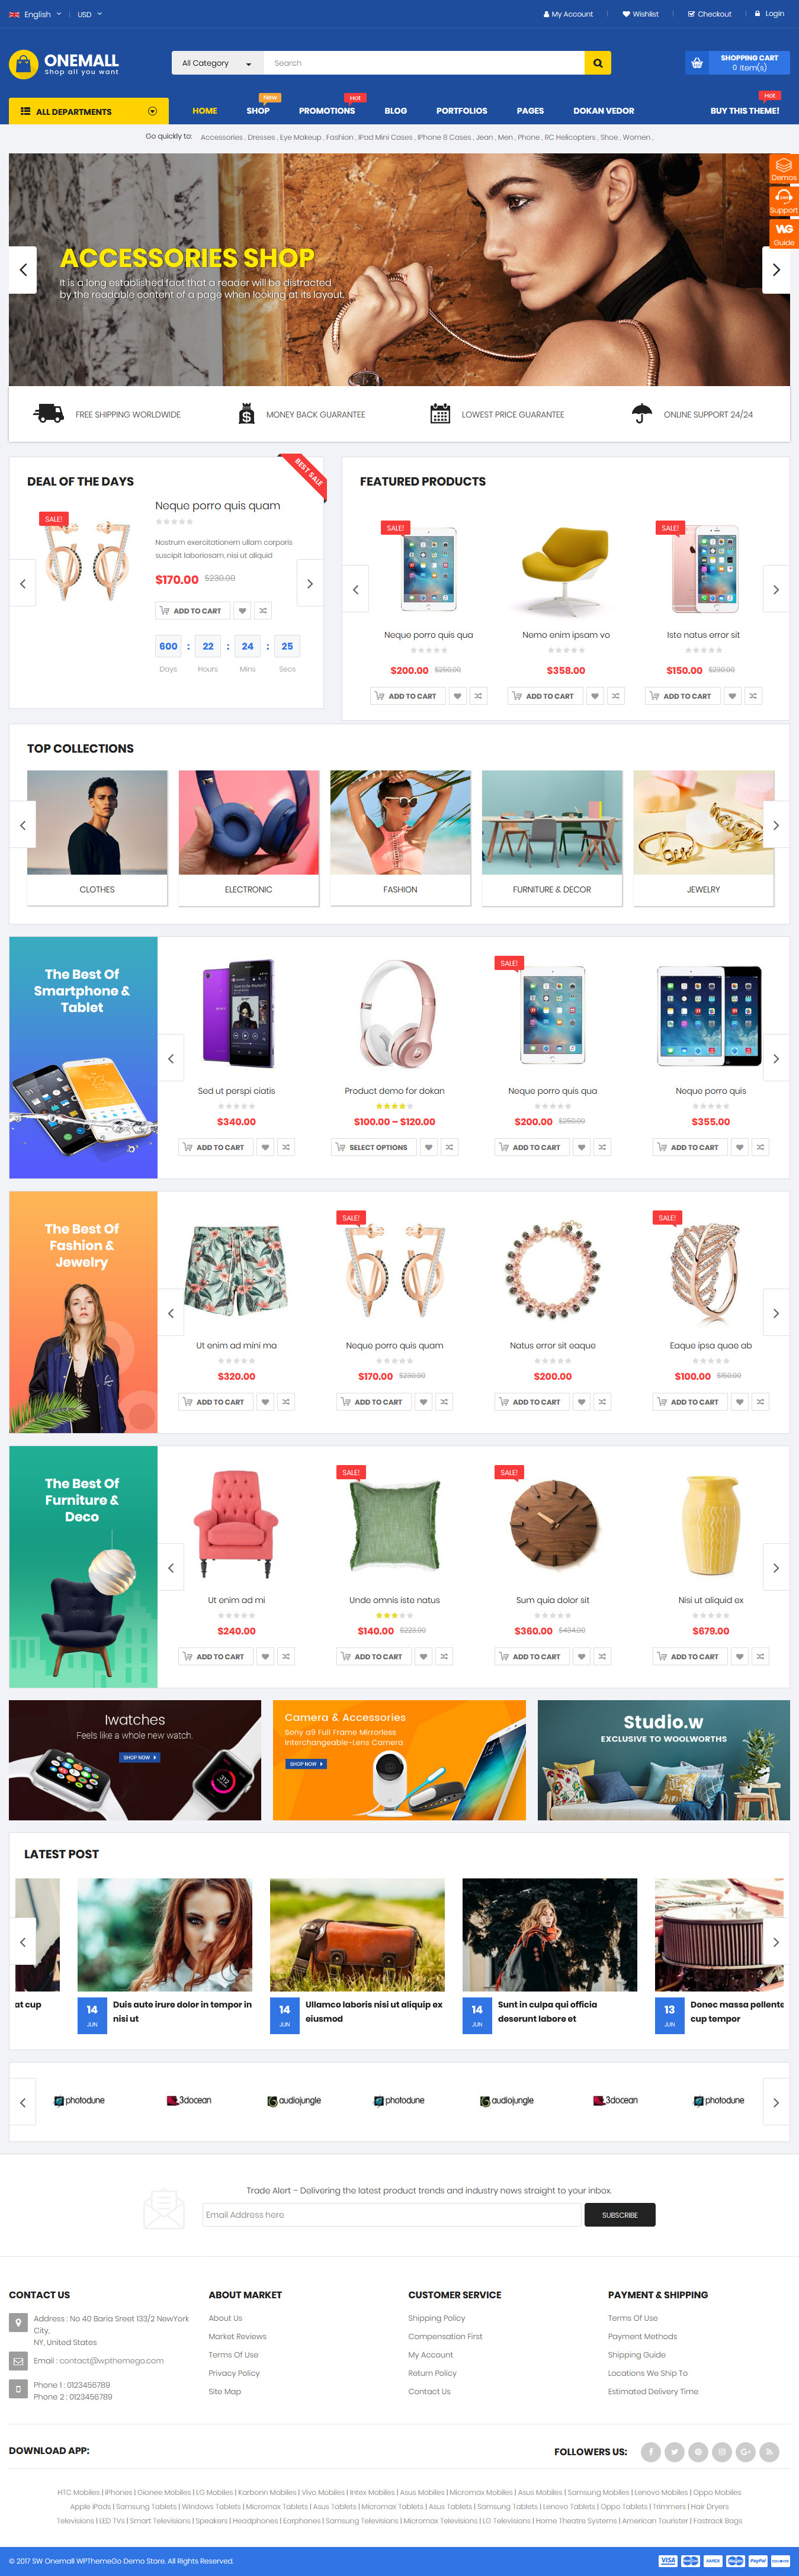 onemall best premium marketplace wordpress theme - 10+ Best Premium Marketplace WordPress Themes